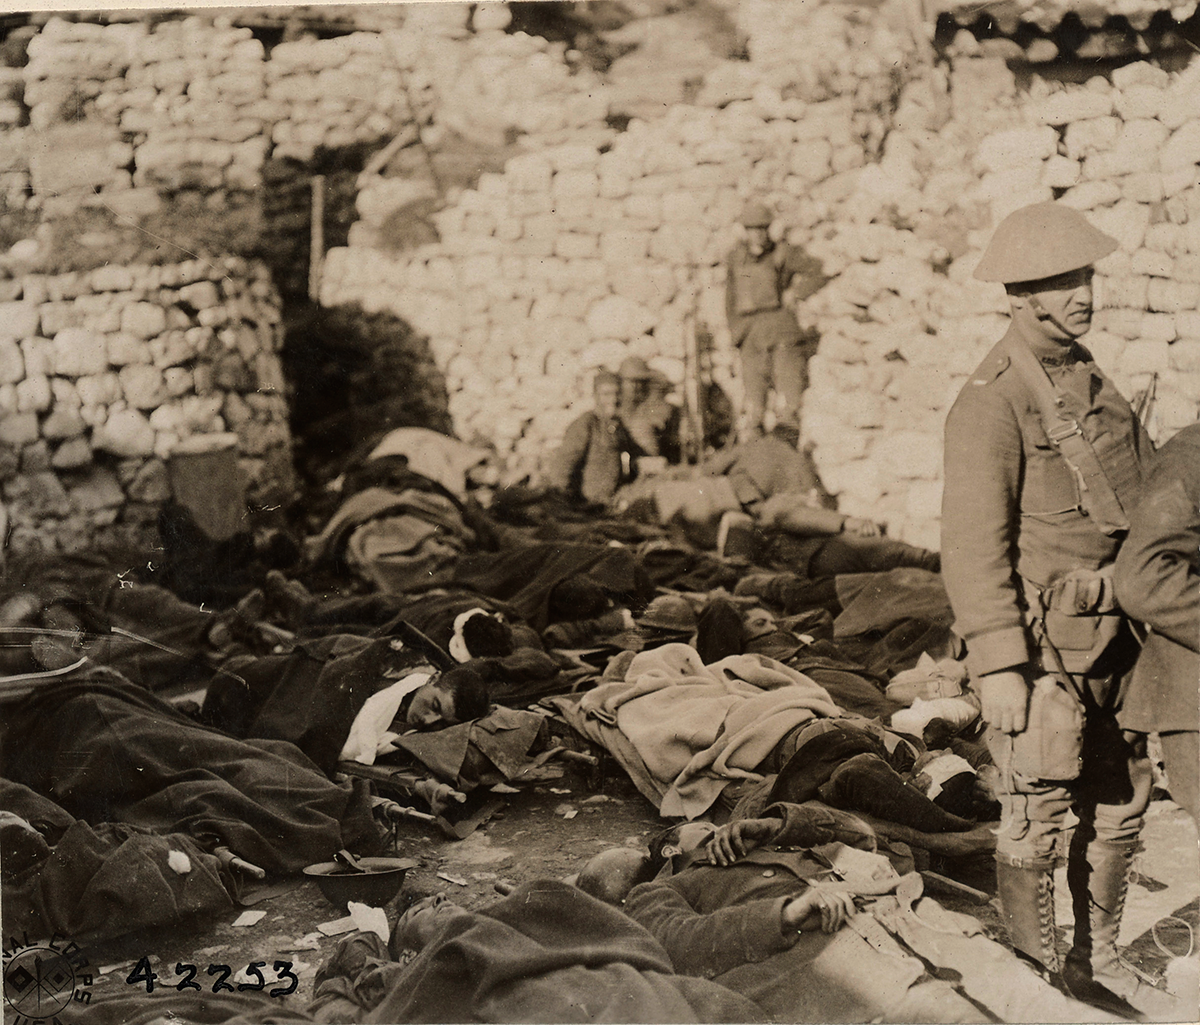 Sepia tone of Soldiers sleeping under blankets on ground